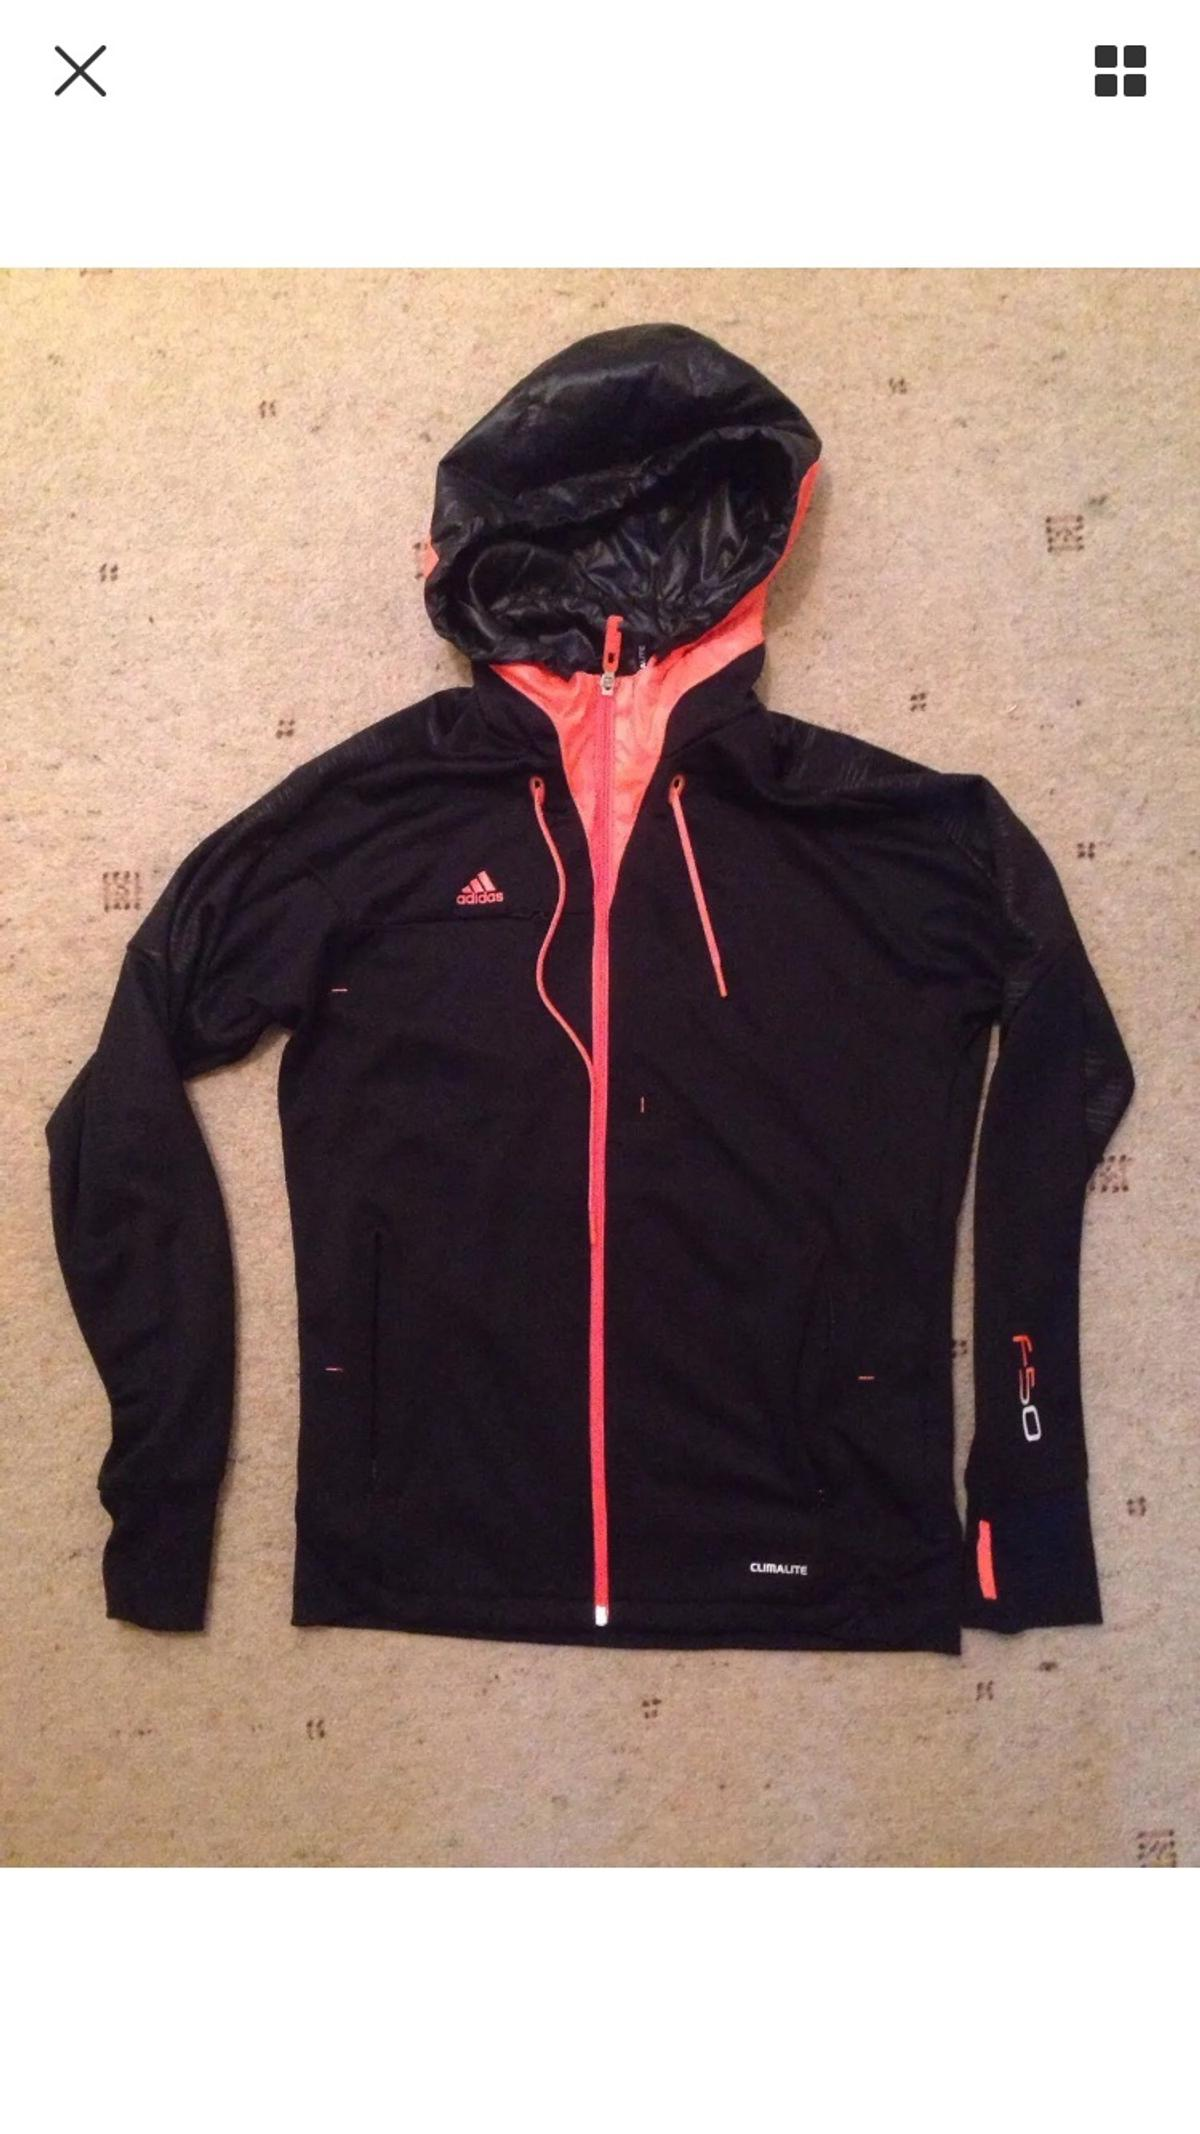 Men's adidas F50 climalite jacket size S in L2 Liverpool für